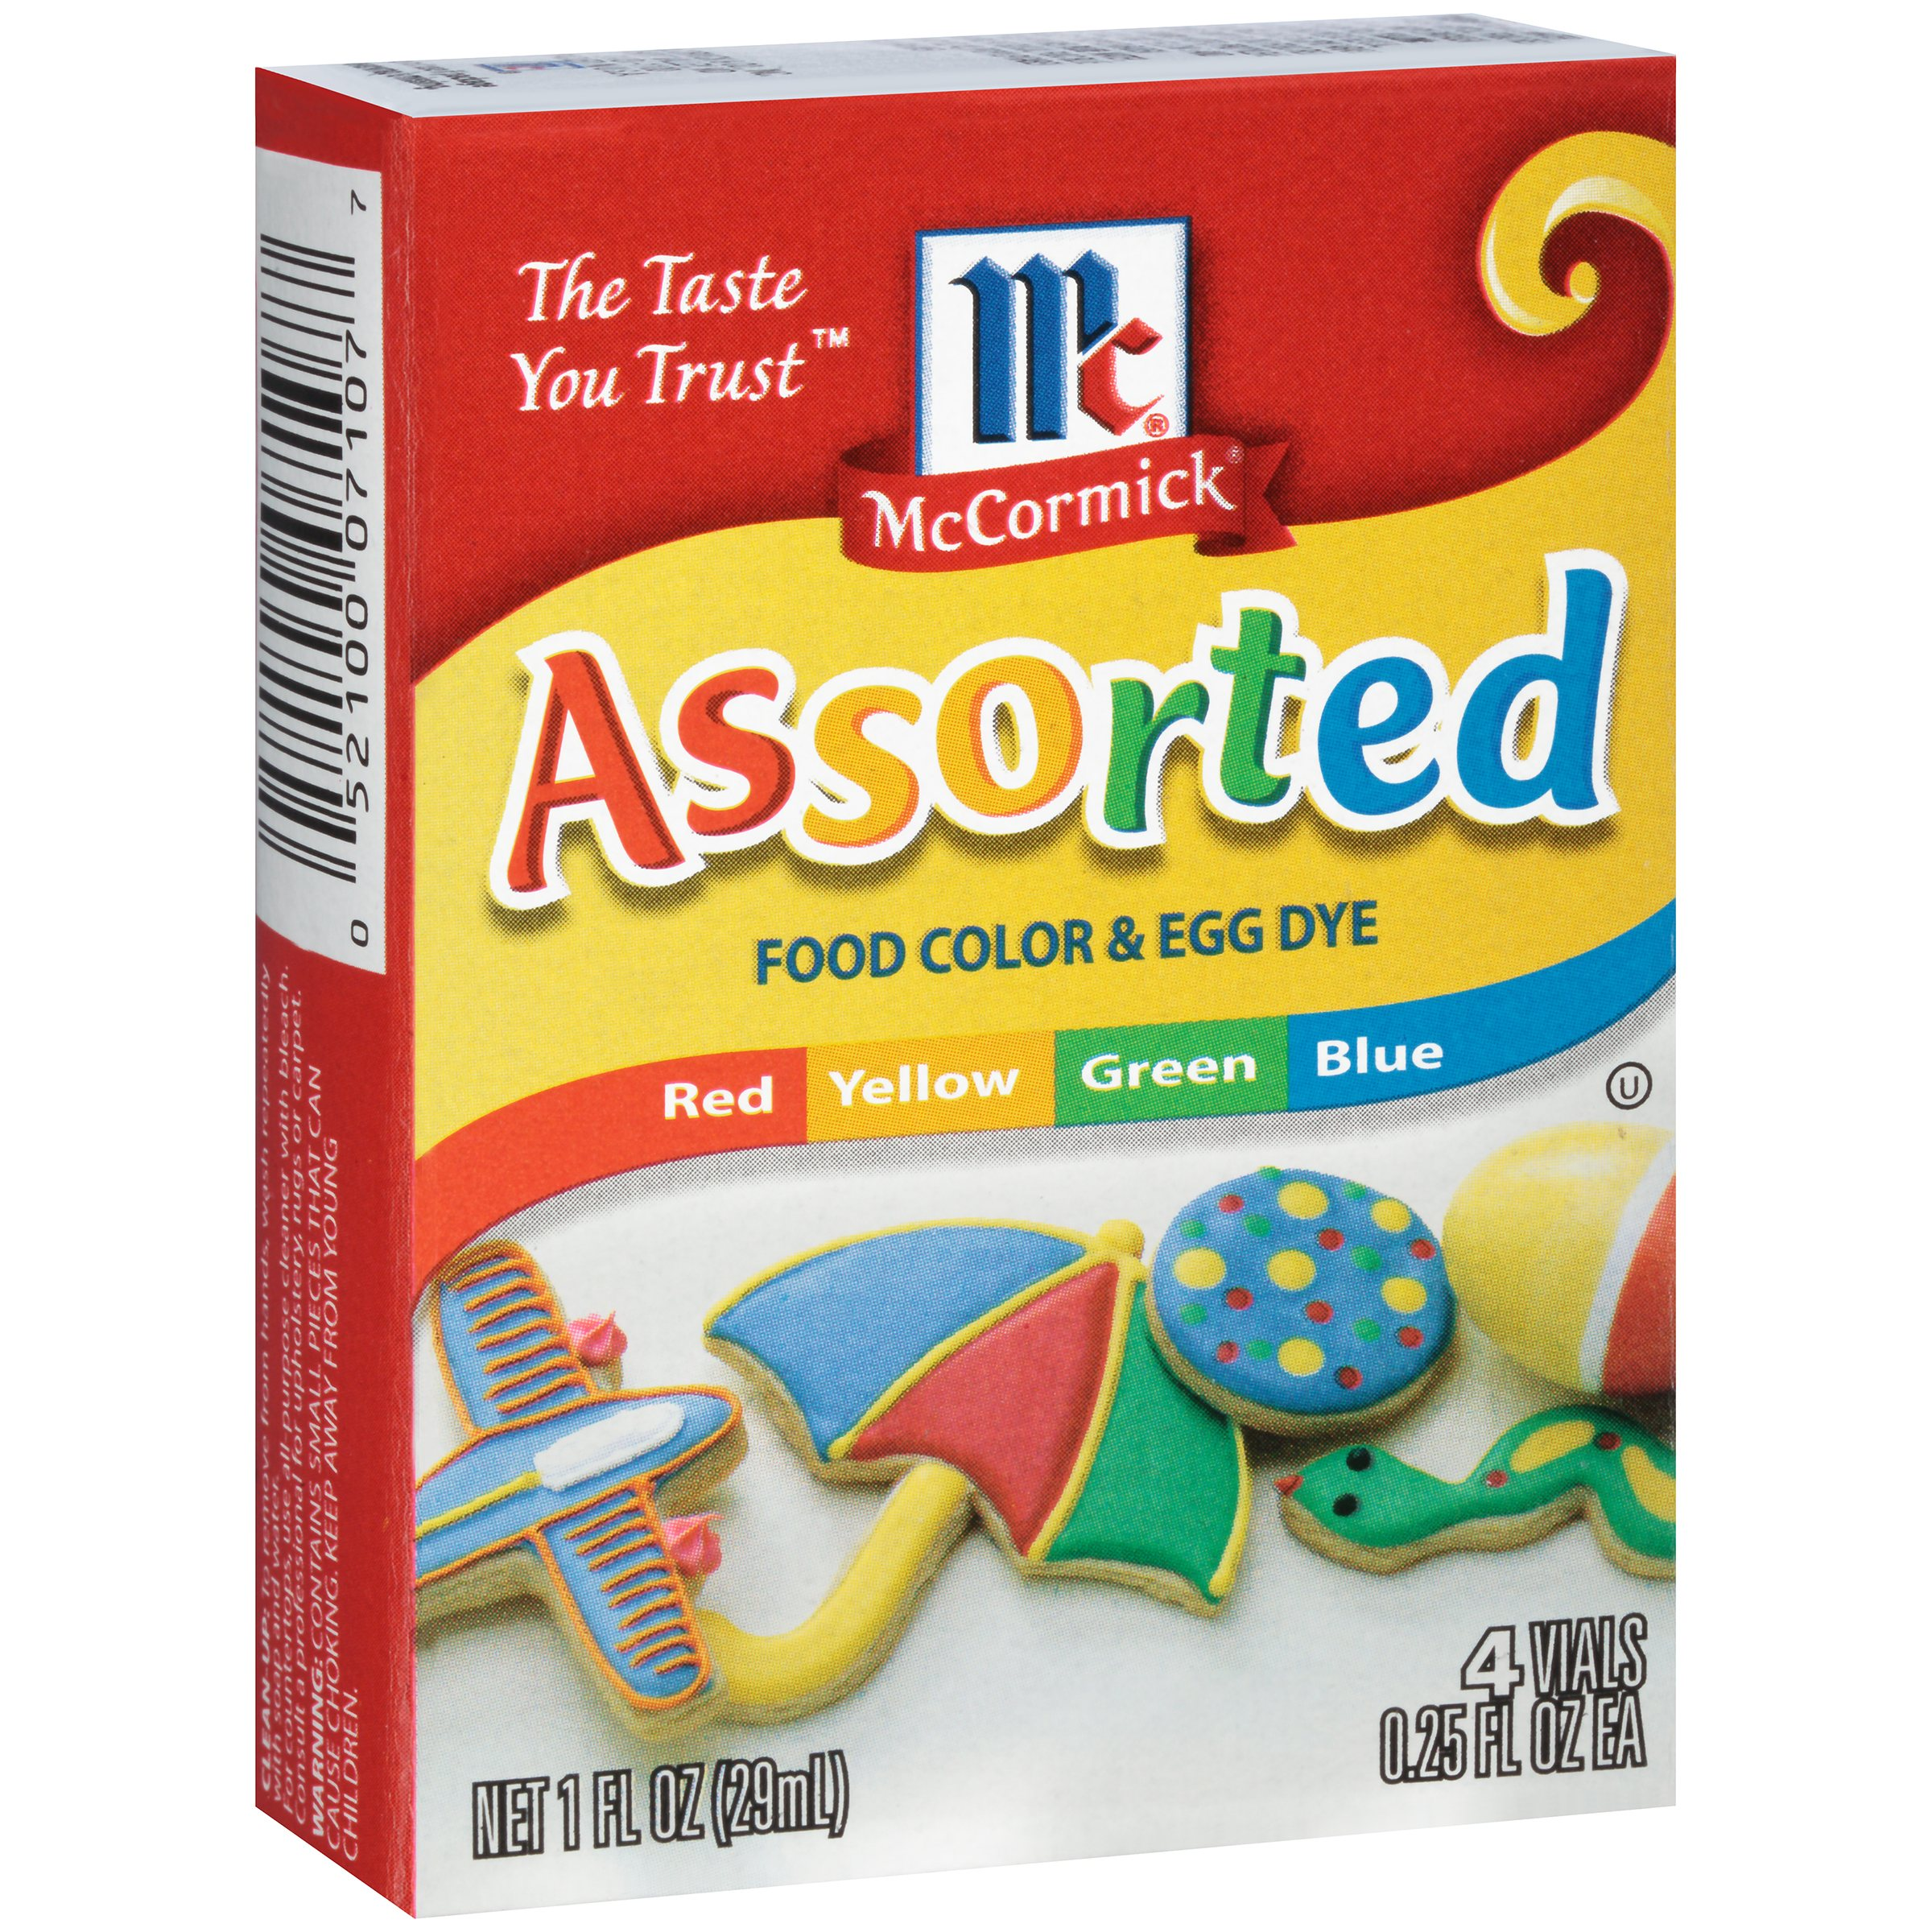 McCormick Assorted Food Colors And Egg Dye, 4 Ct/1 Fl oz